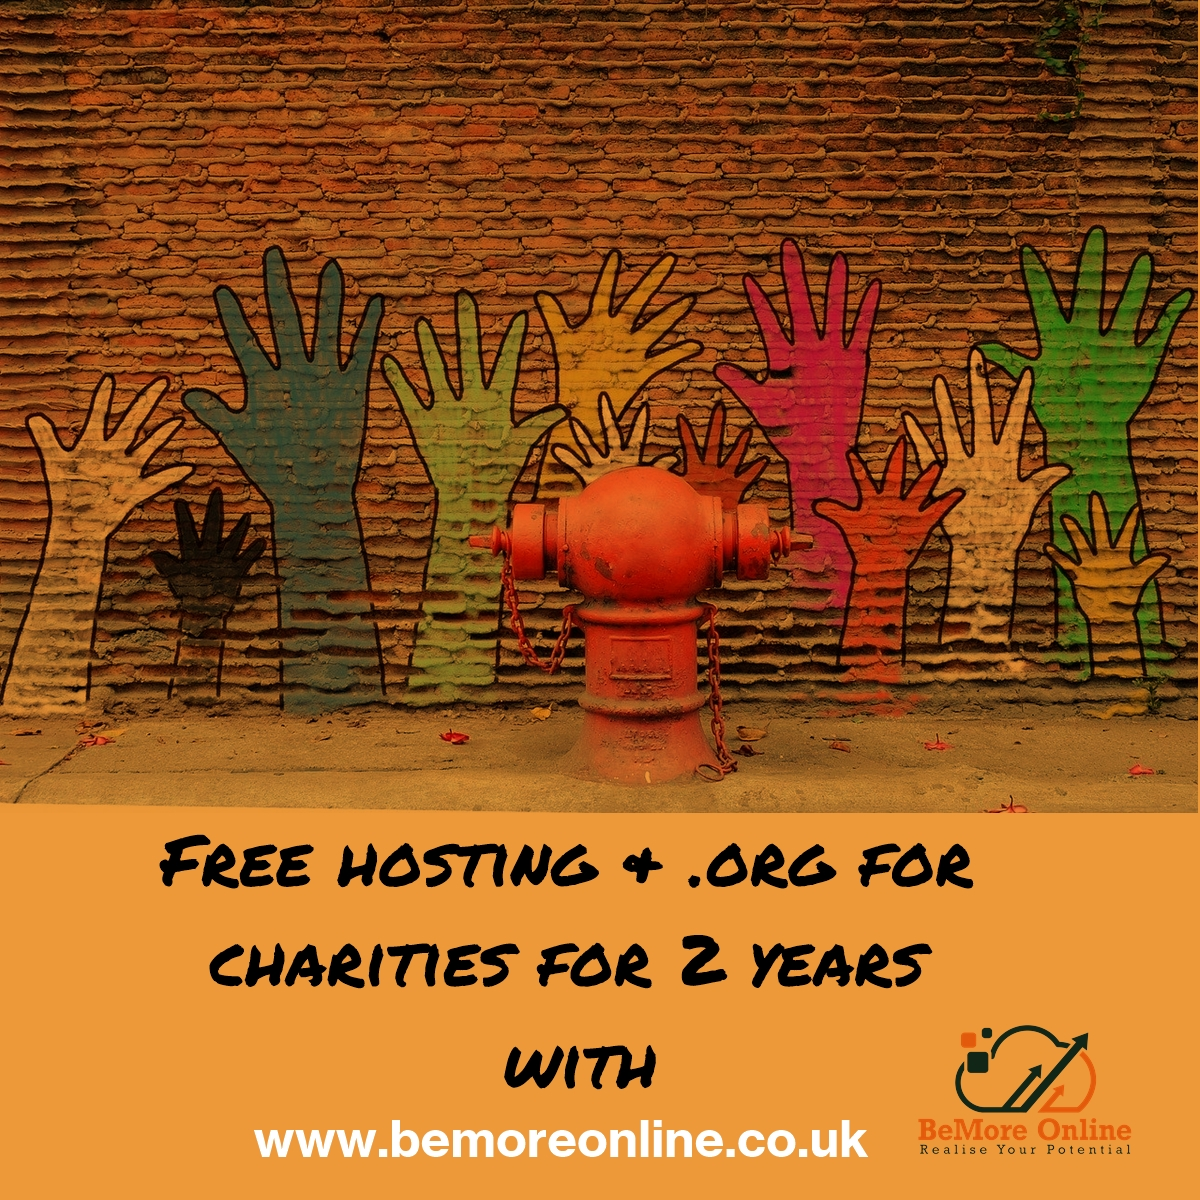 If you represent a UK charity we want to recognise and support your efforts with free hosting for 2 years and a free .org domain name for 2 years as well.  Simple☑️  Realise your potential https://t.co/FHP3o90TRf  #charity #charitywork #free #charitytuesday https://t.co/piOLFCE76l